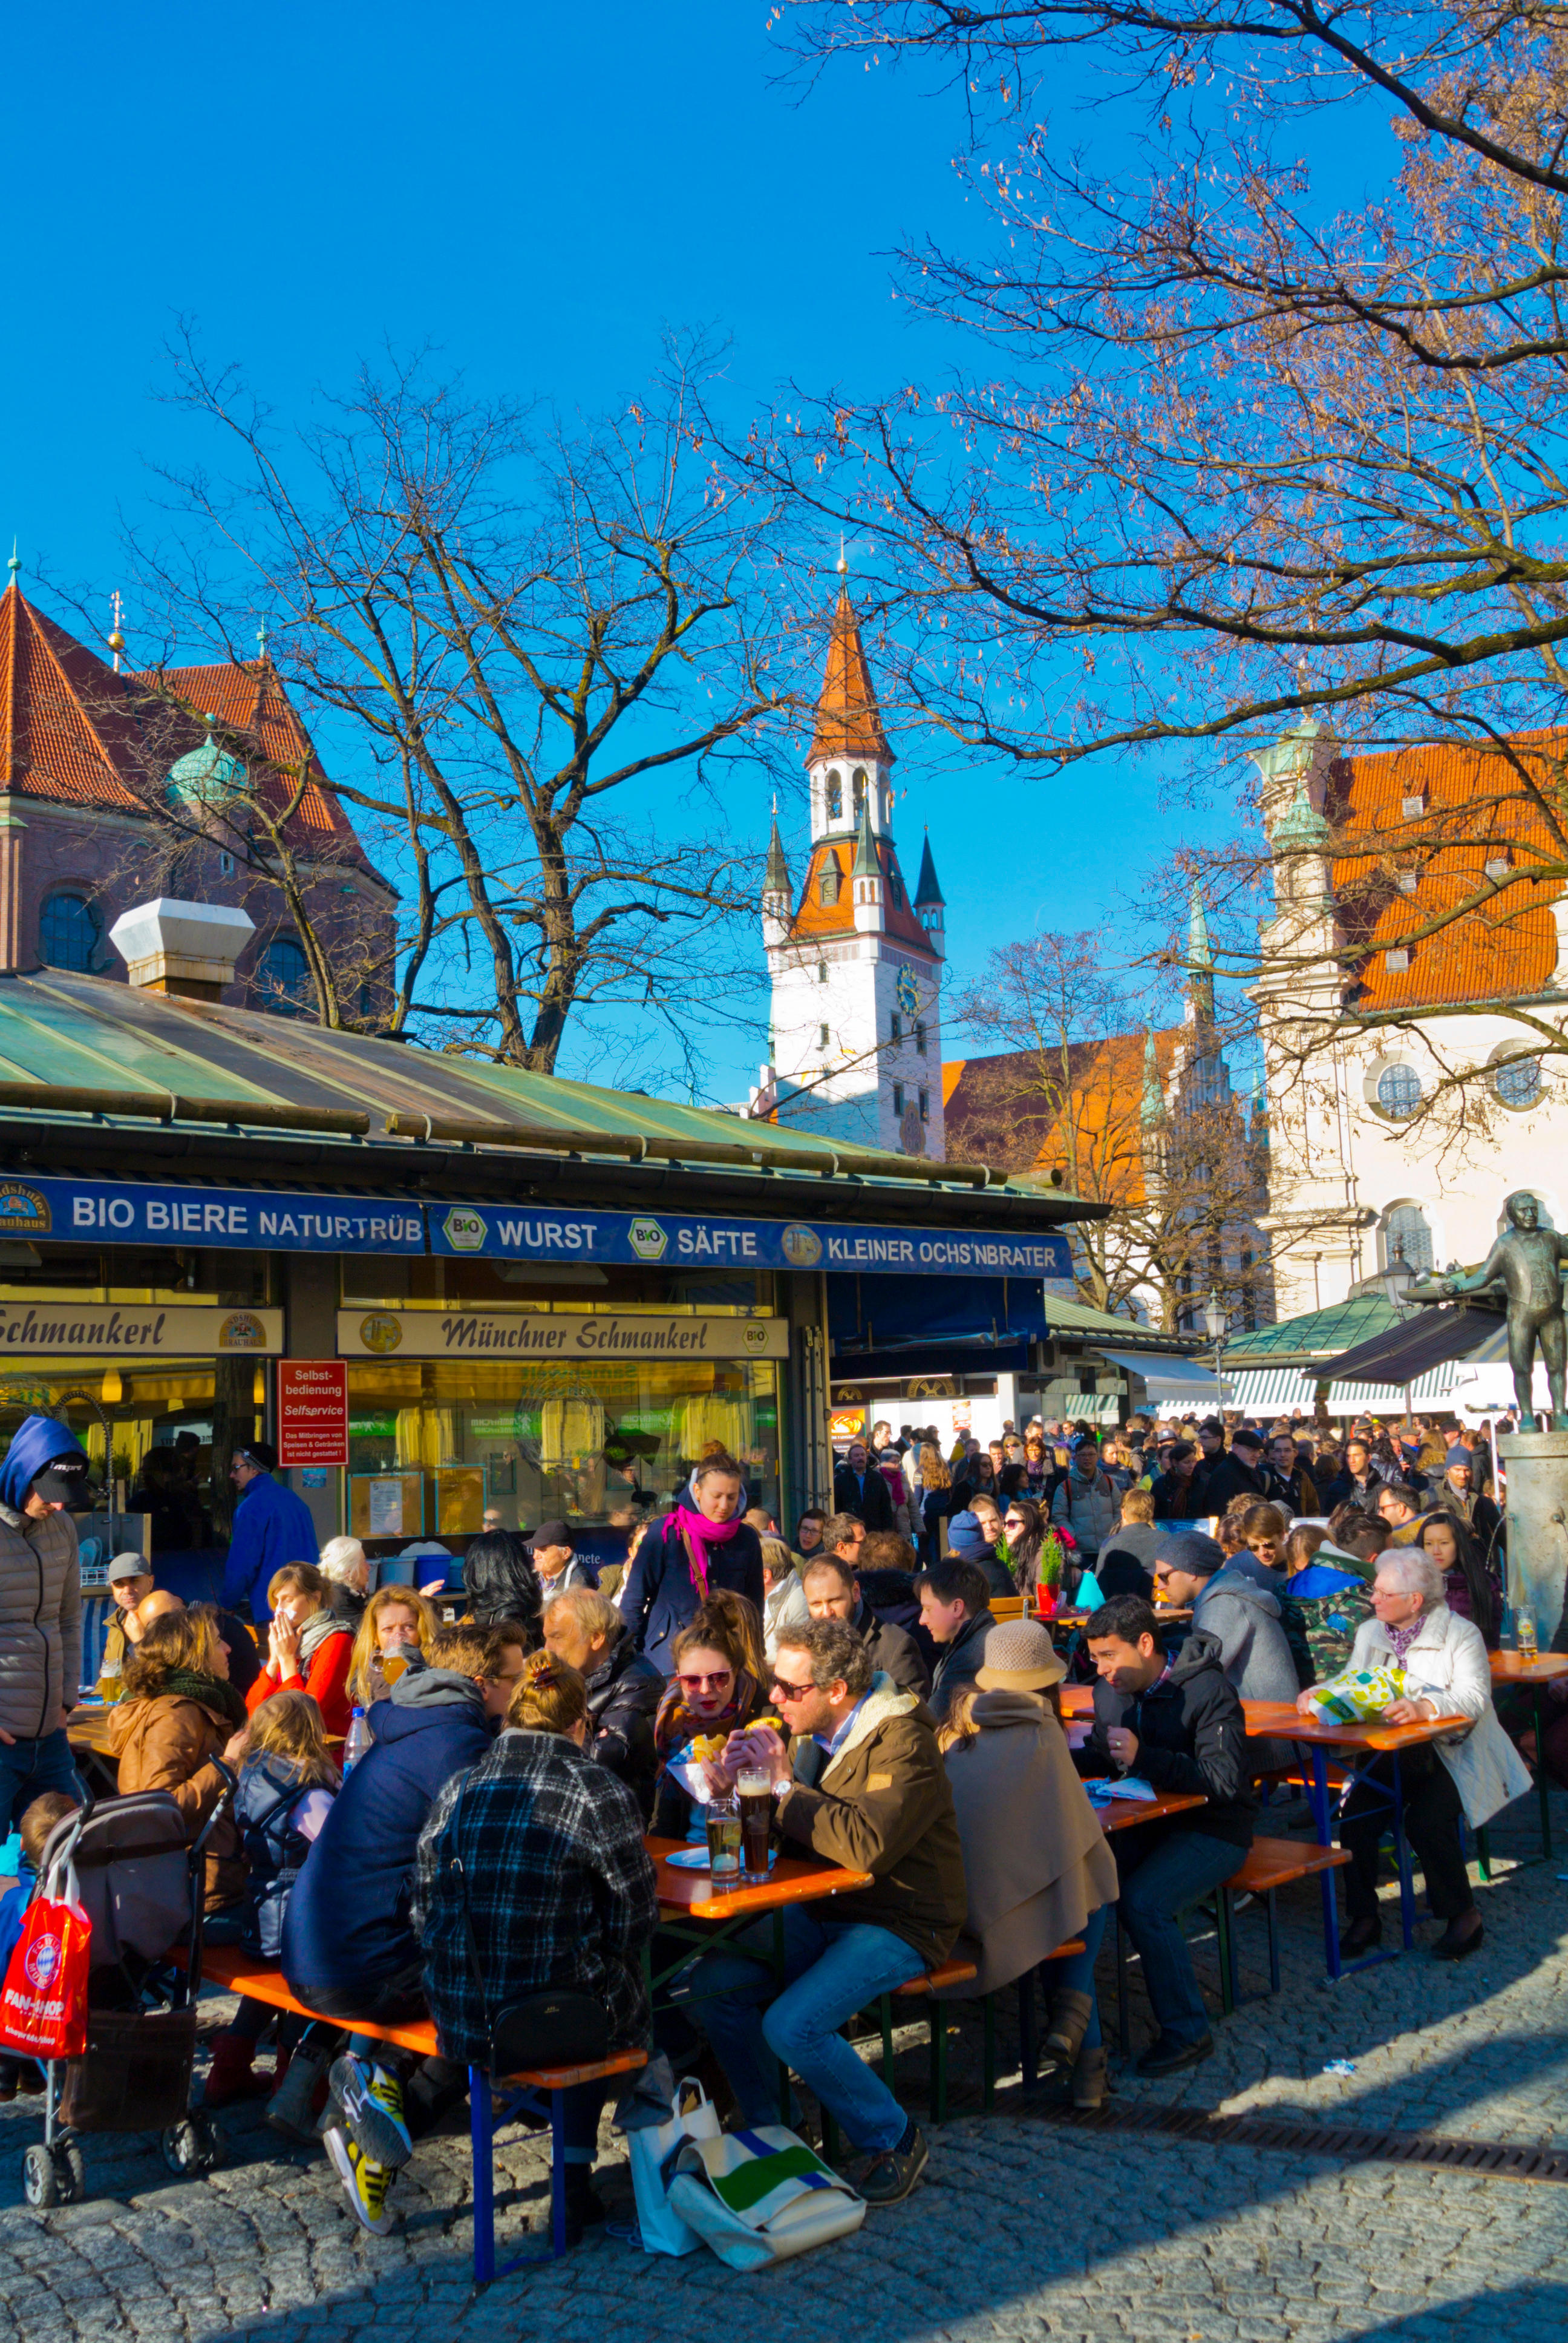 Restaurant terraces, Viktualienmarkt, main market square, Altstadt, old town, Munich, Bavaria, Germany